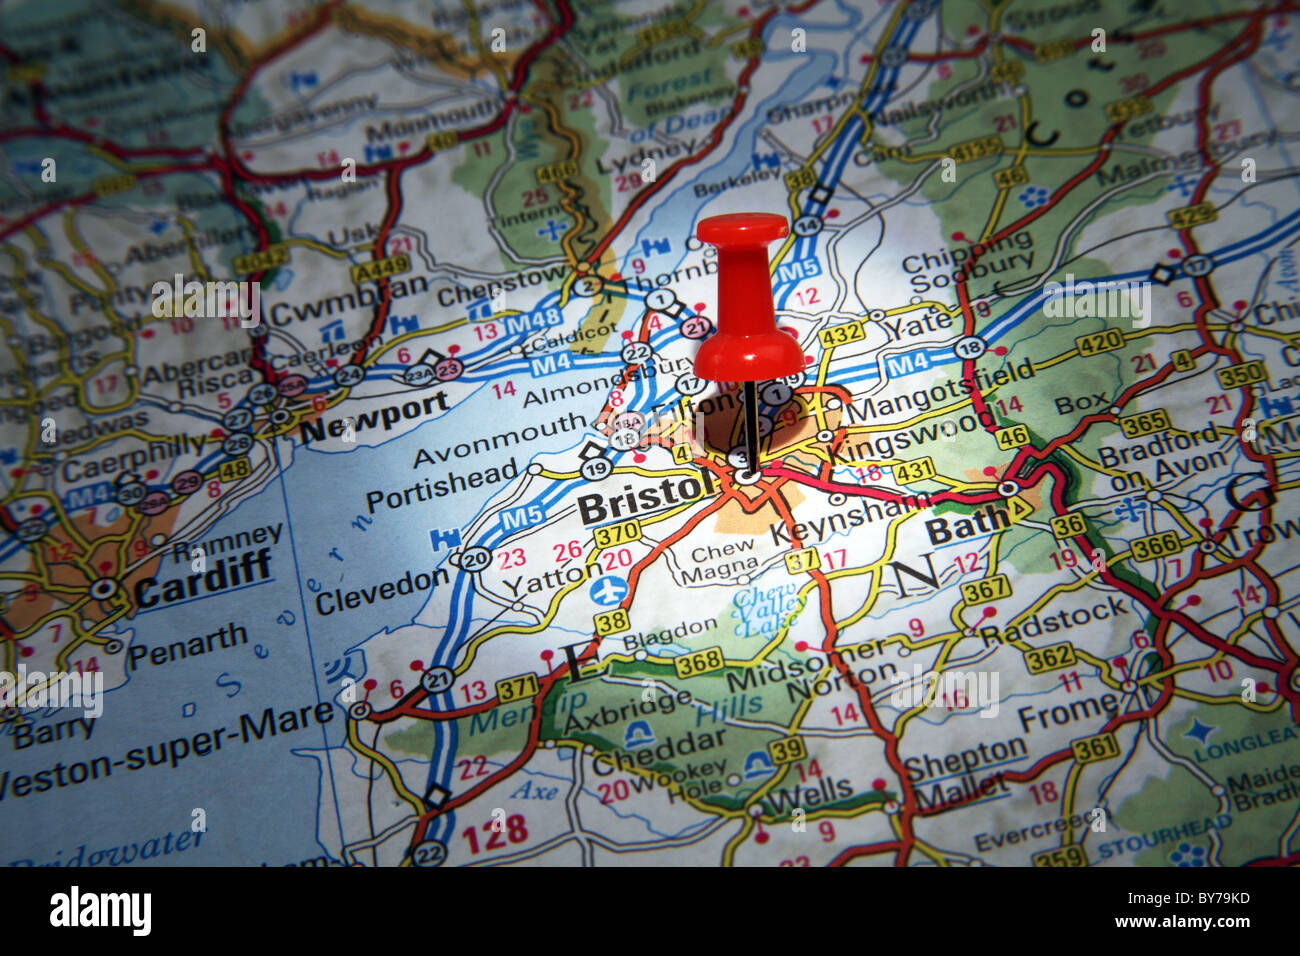 Map Pin pointing to the City of